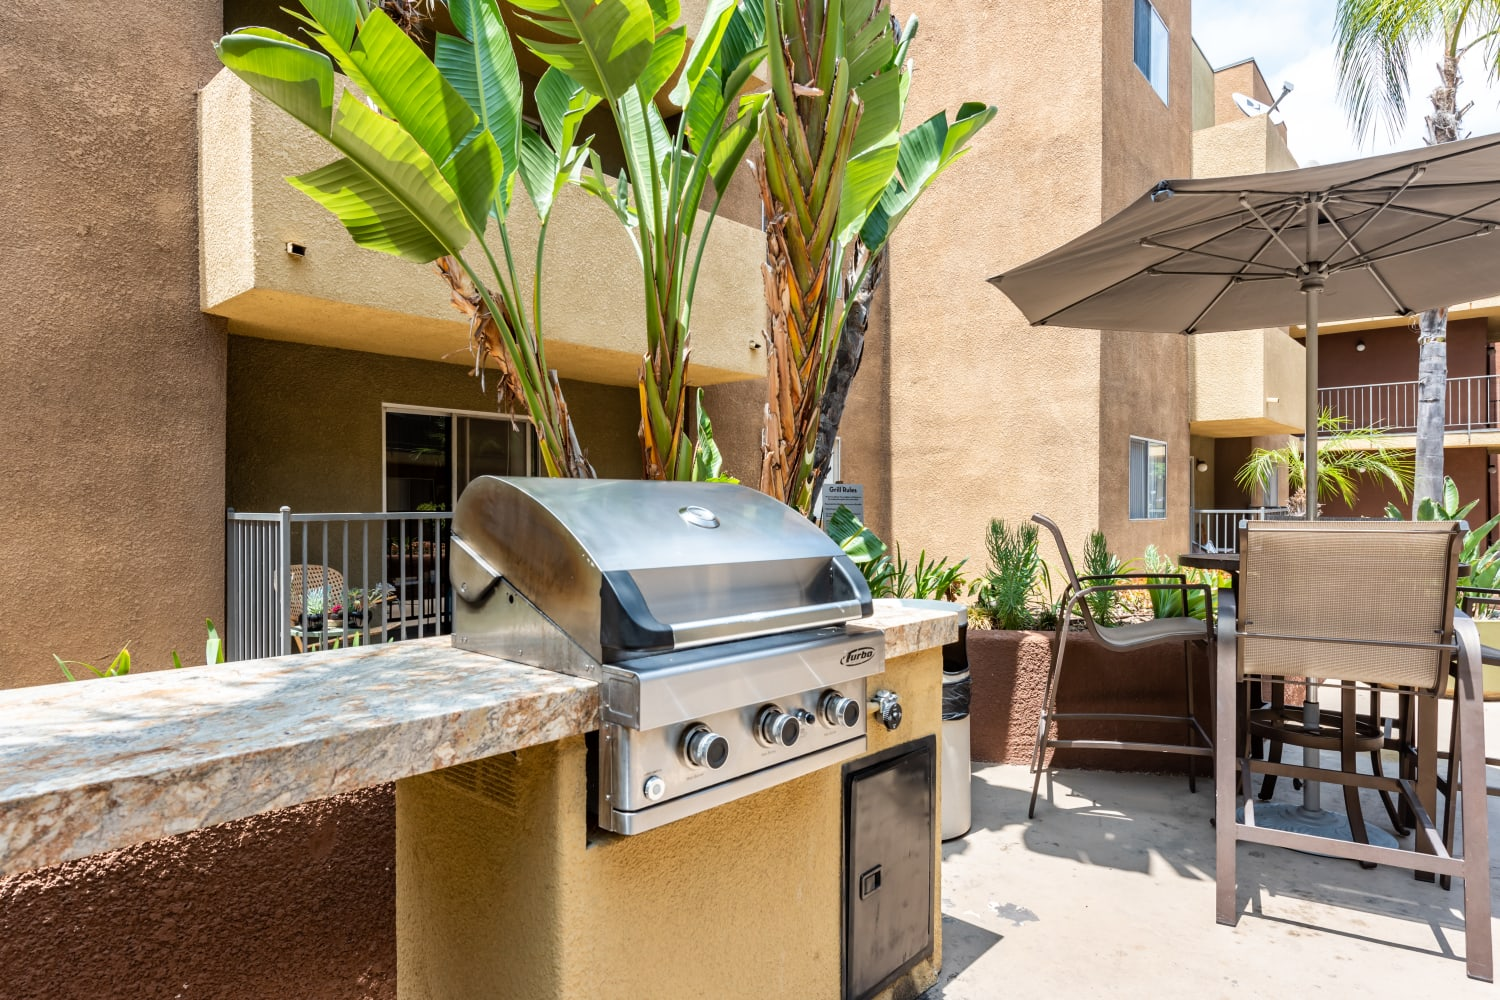 BBQ Area at Apartments in Glendale, California